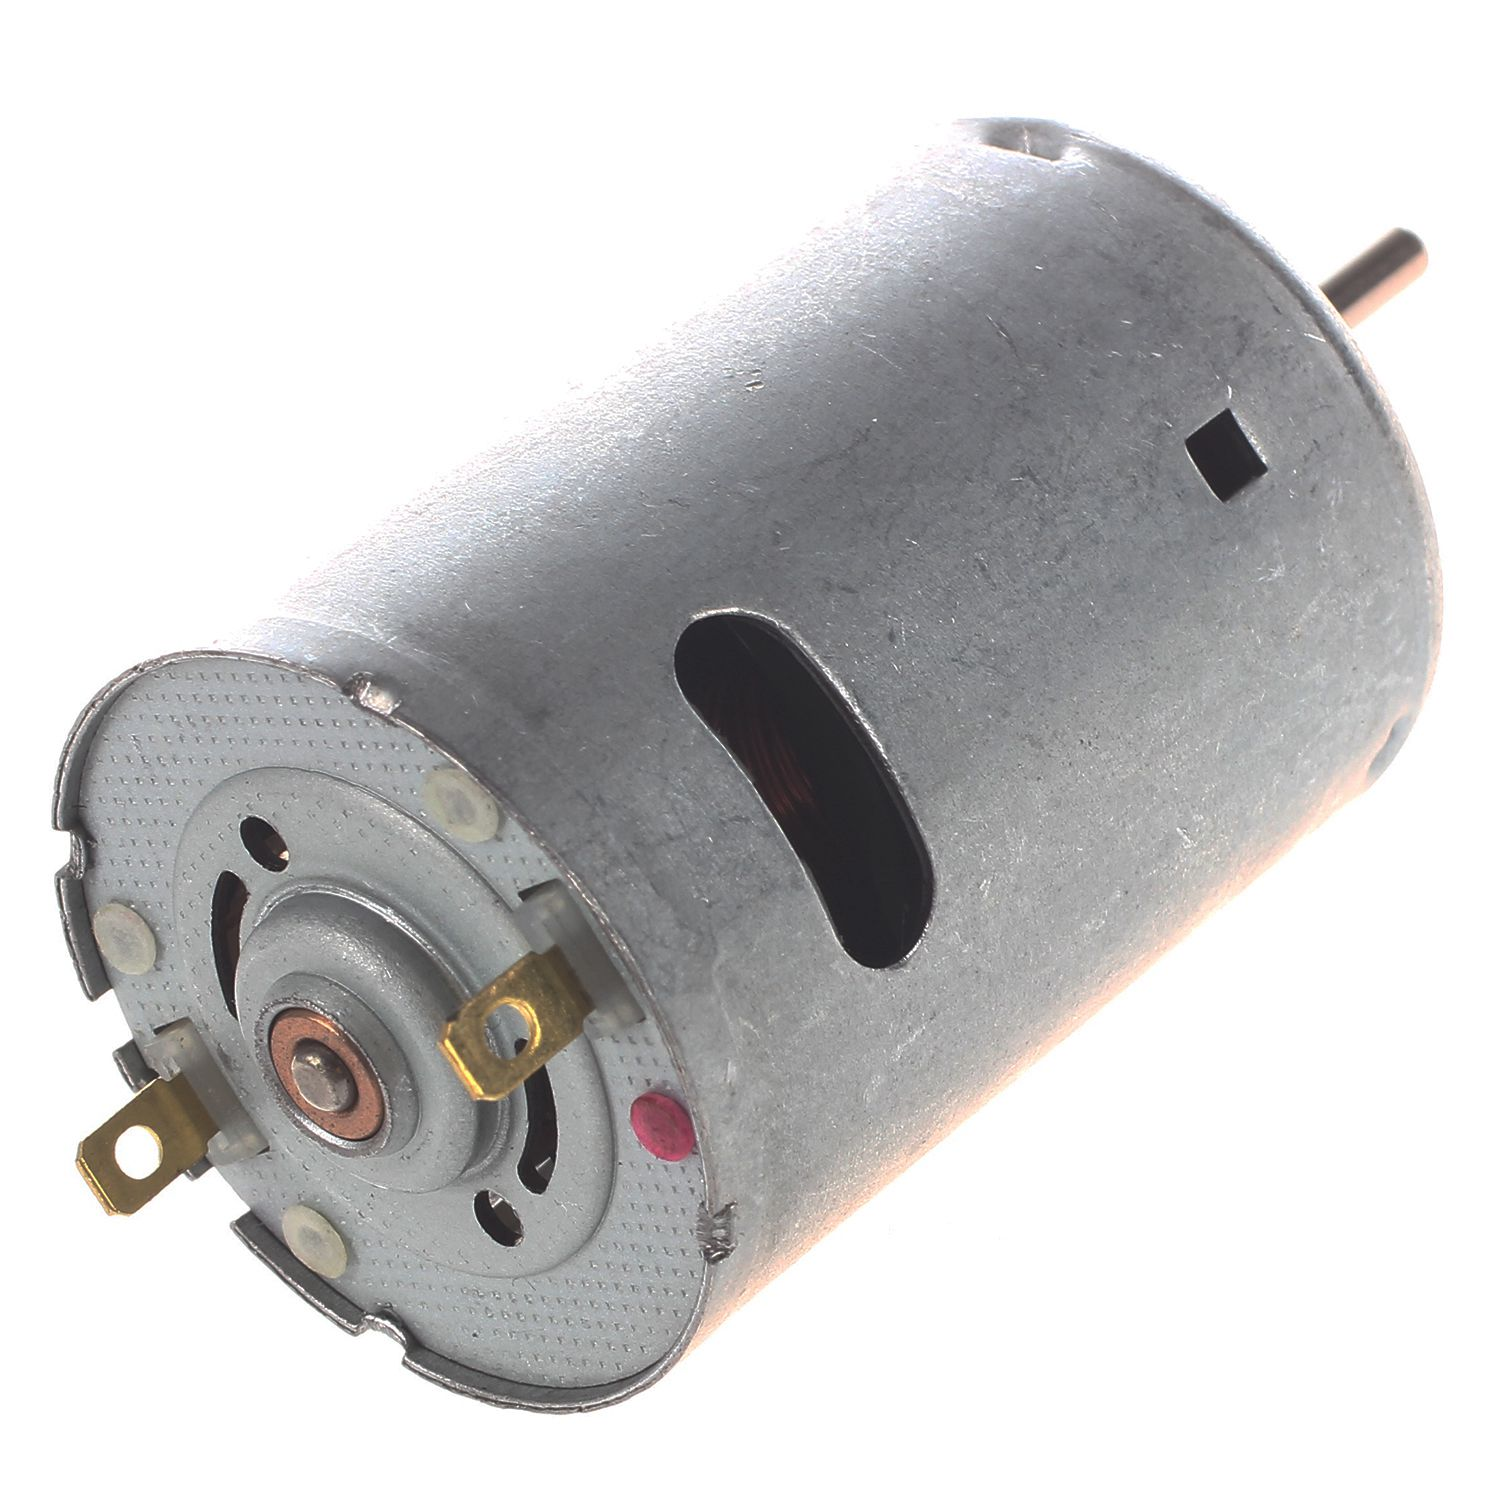 DC Motor 6V - 12V Voltage 1.1 A - 1.9 Current 13000 RPM - 26000 RPM high torque motor S.C. R / C for helicopter boat wltoys v272 abs replacement r c helicopter body frame w motor case for v272 h111 yellow